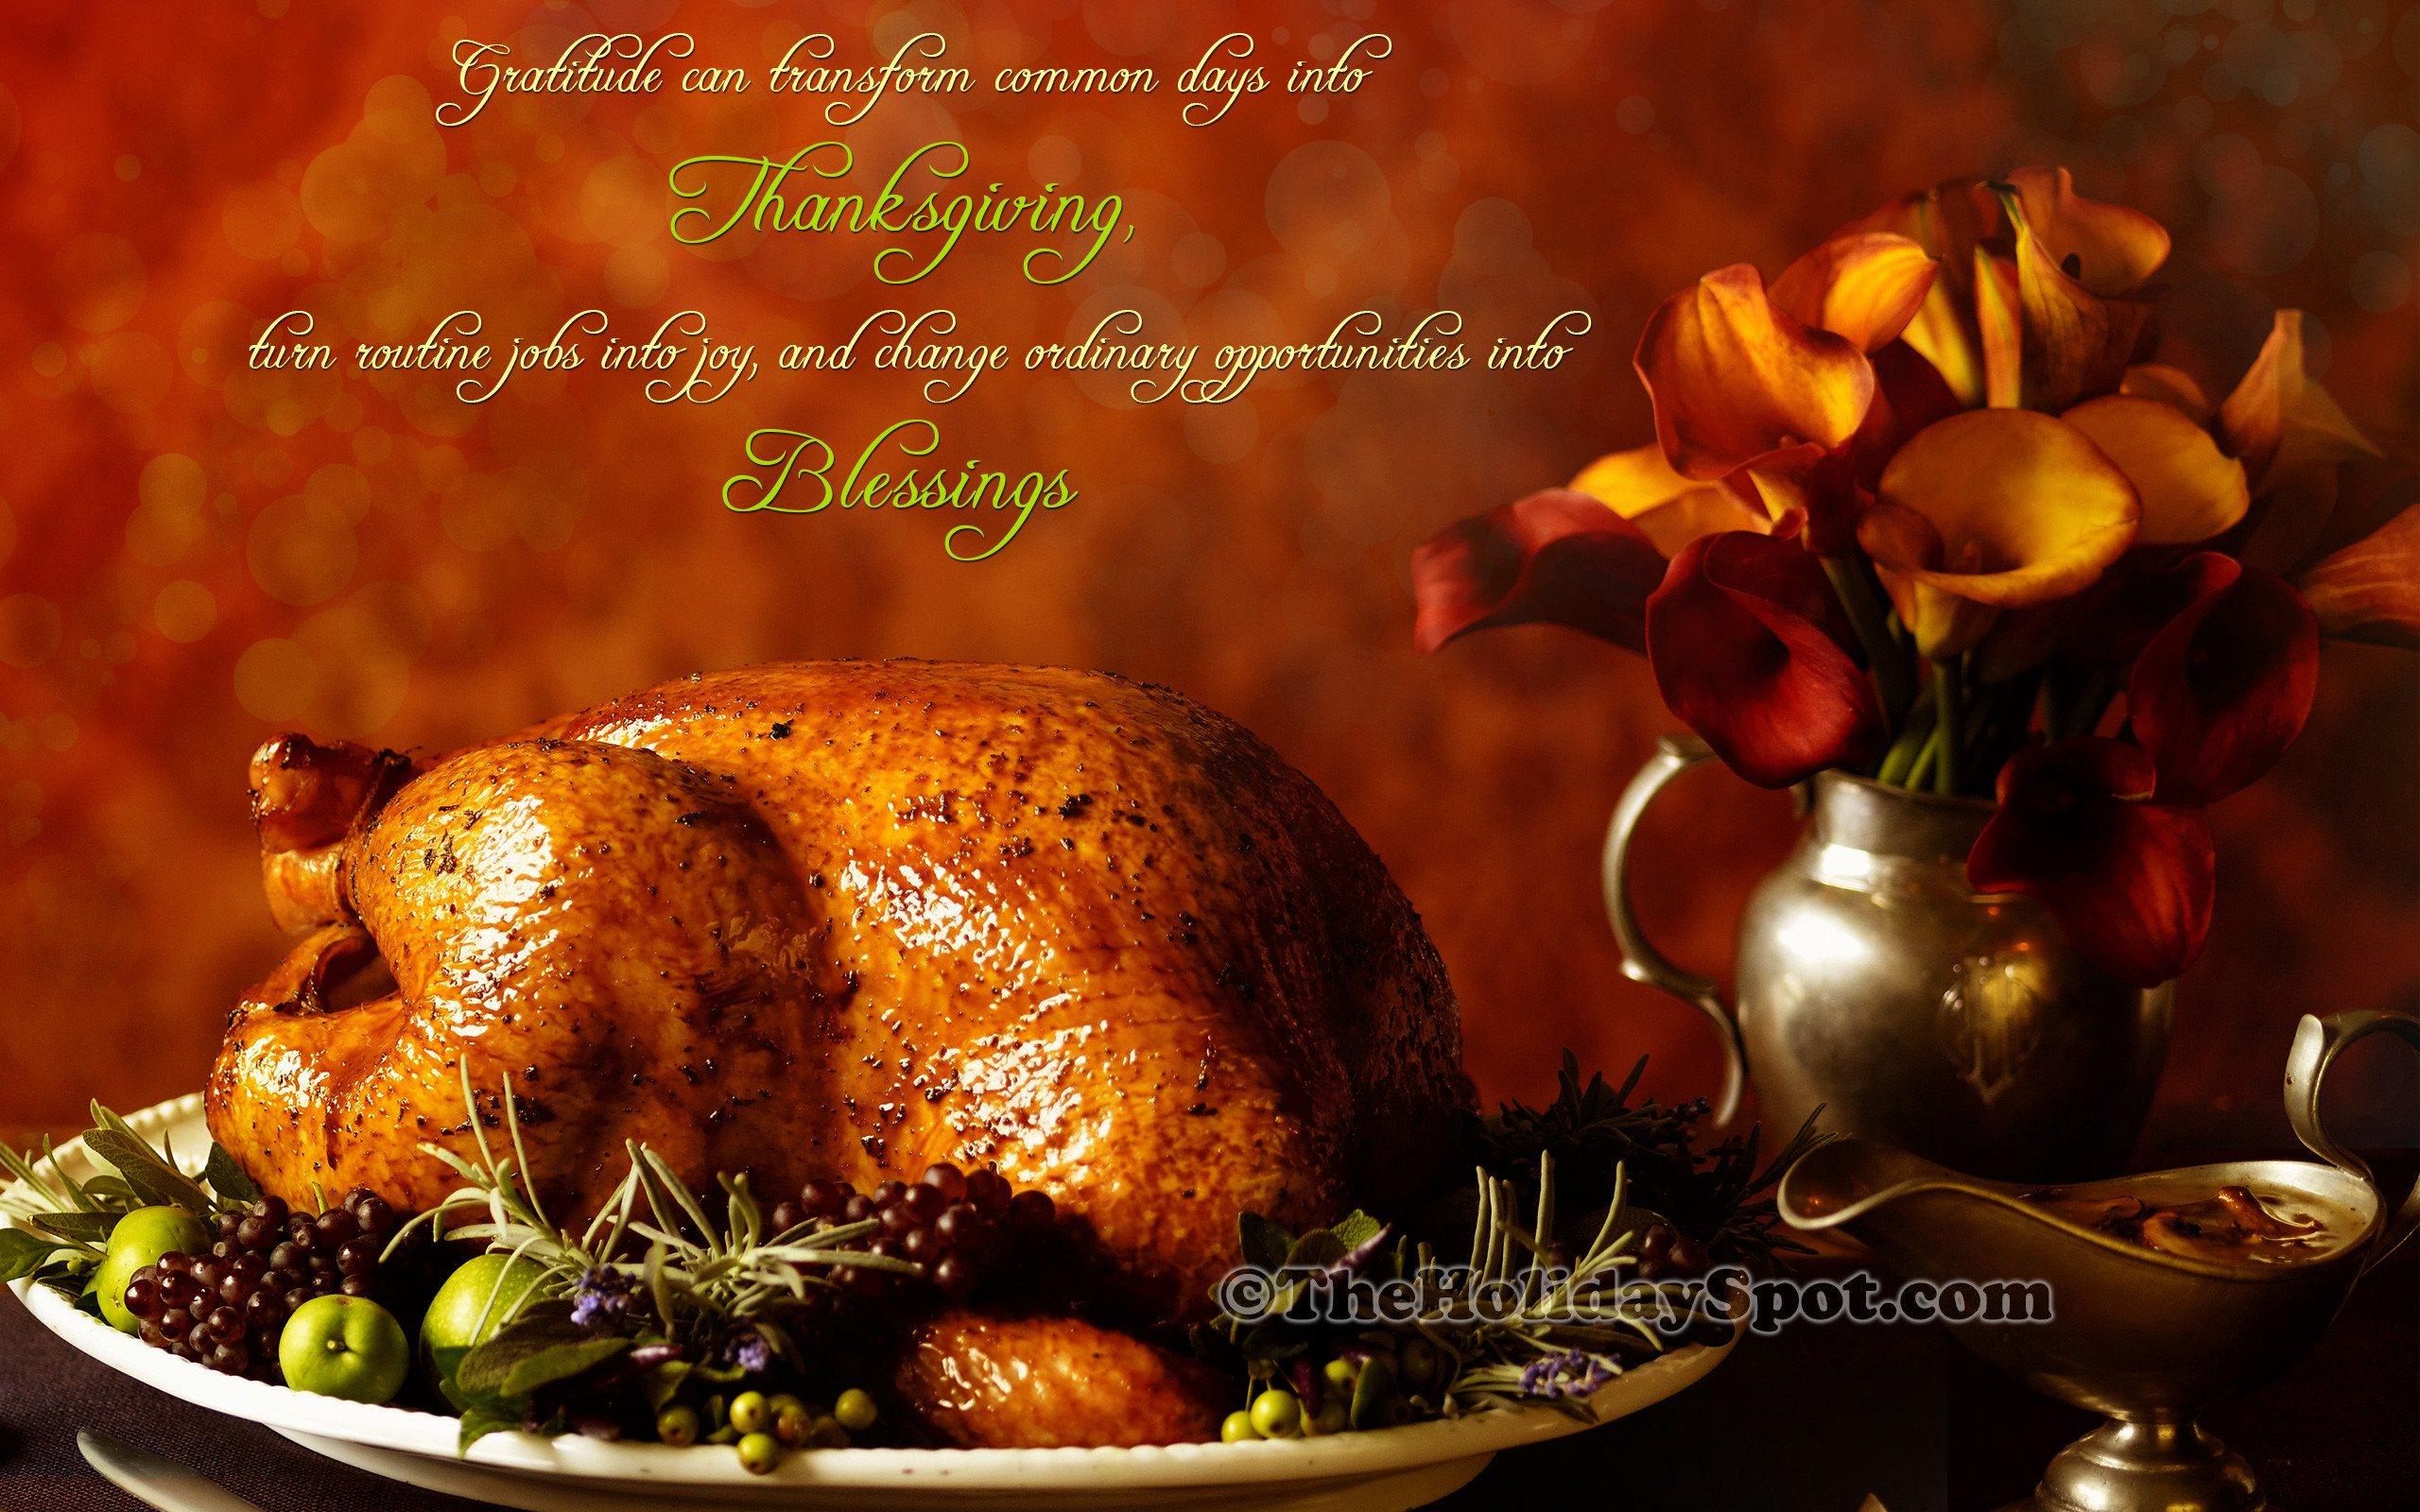 Res: 2560x1600, Thanksgiving HD wallpaper - Lady giving thanks to Lord